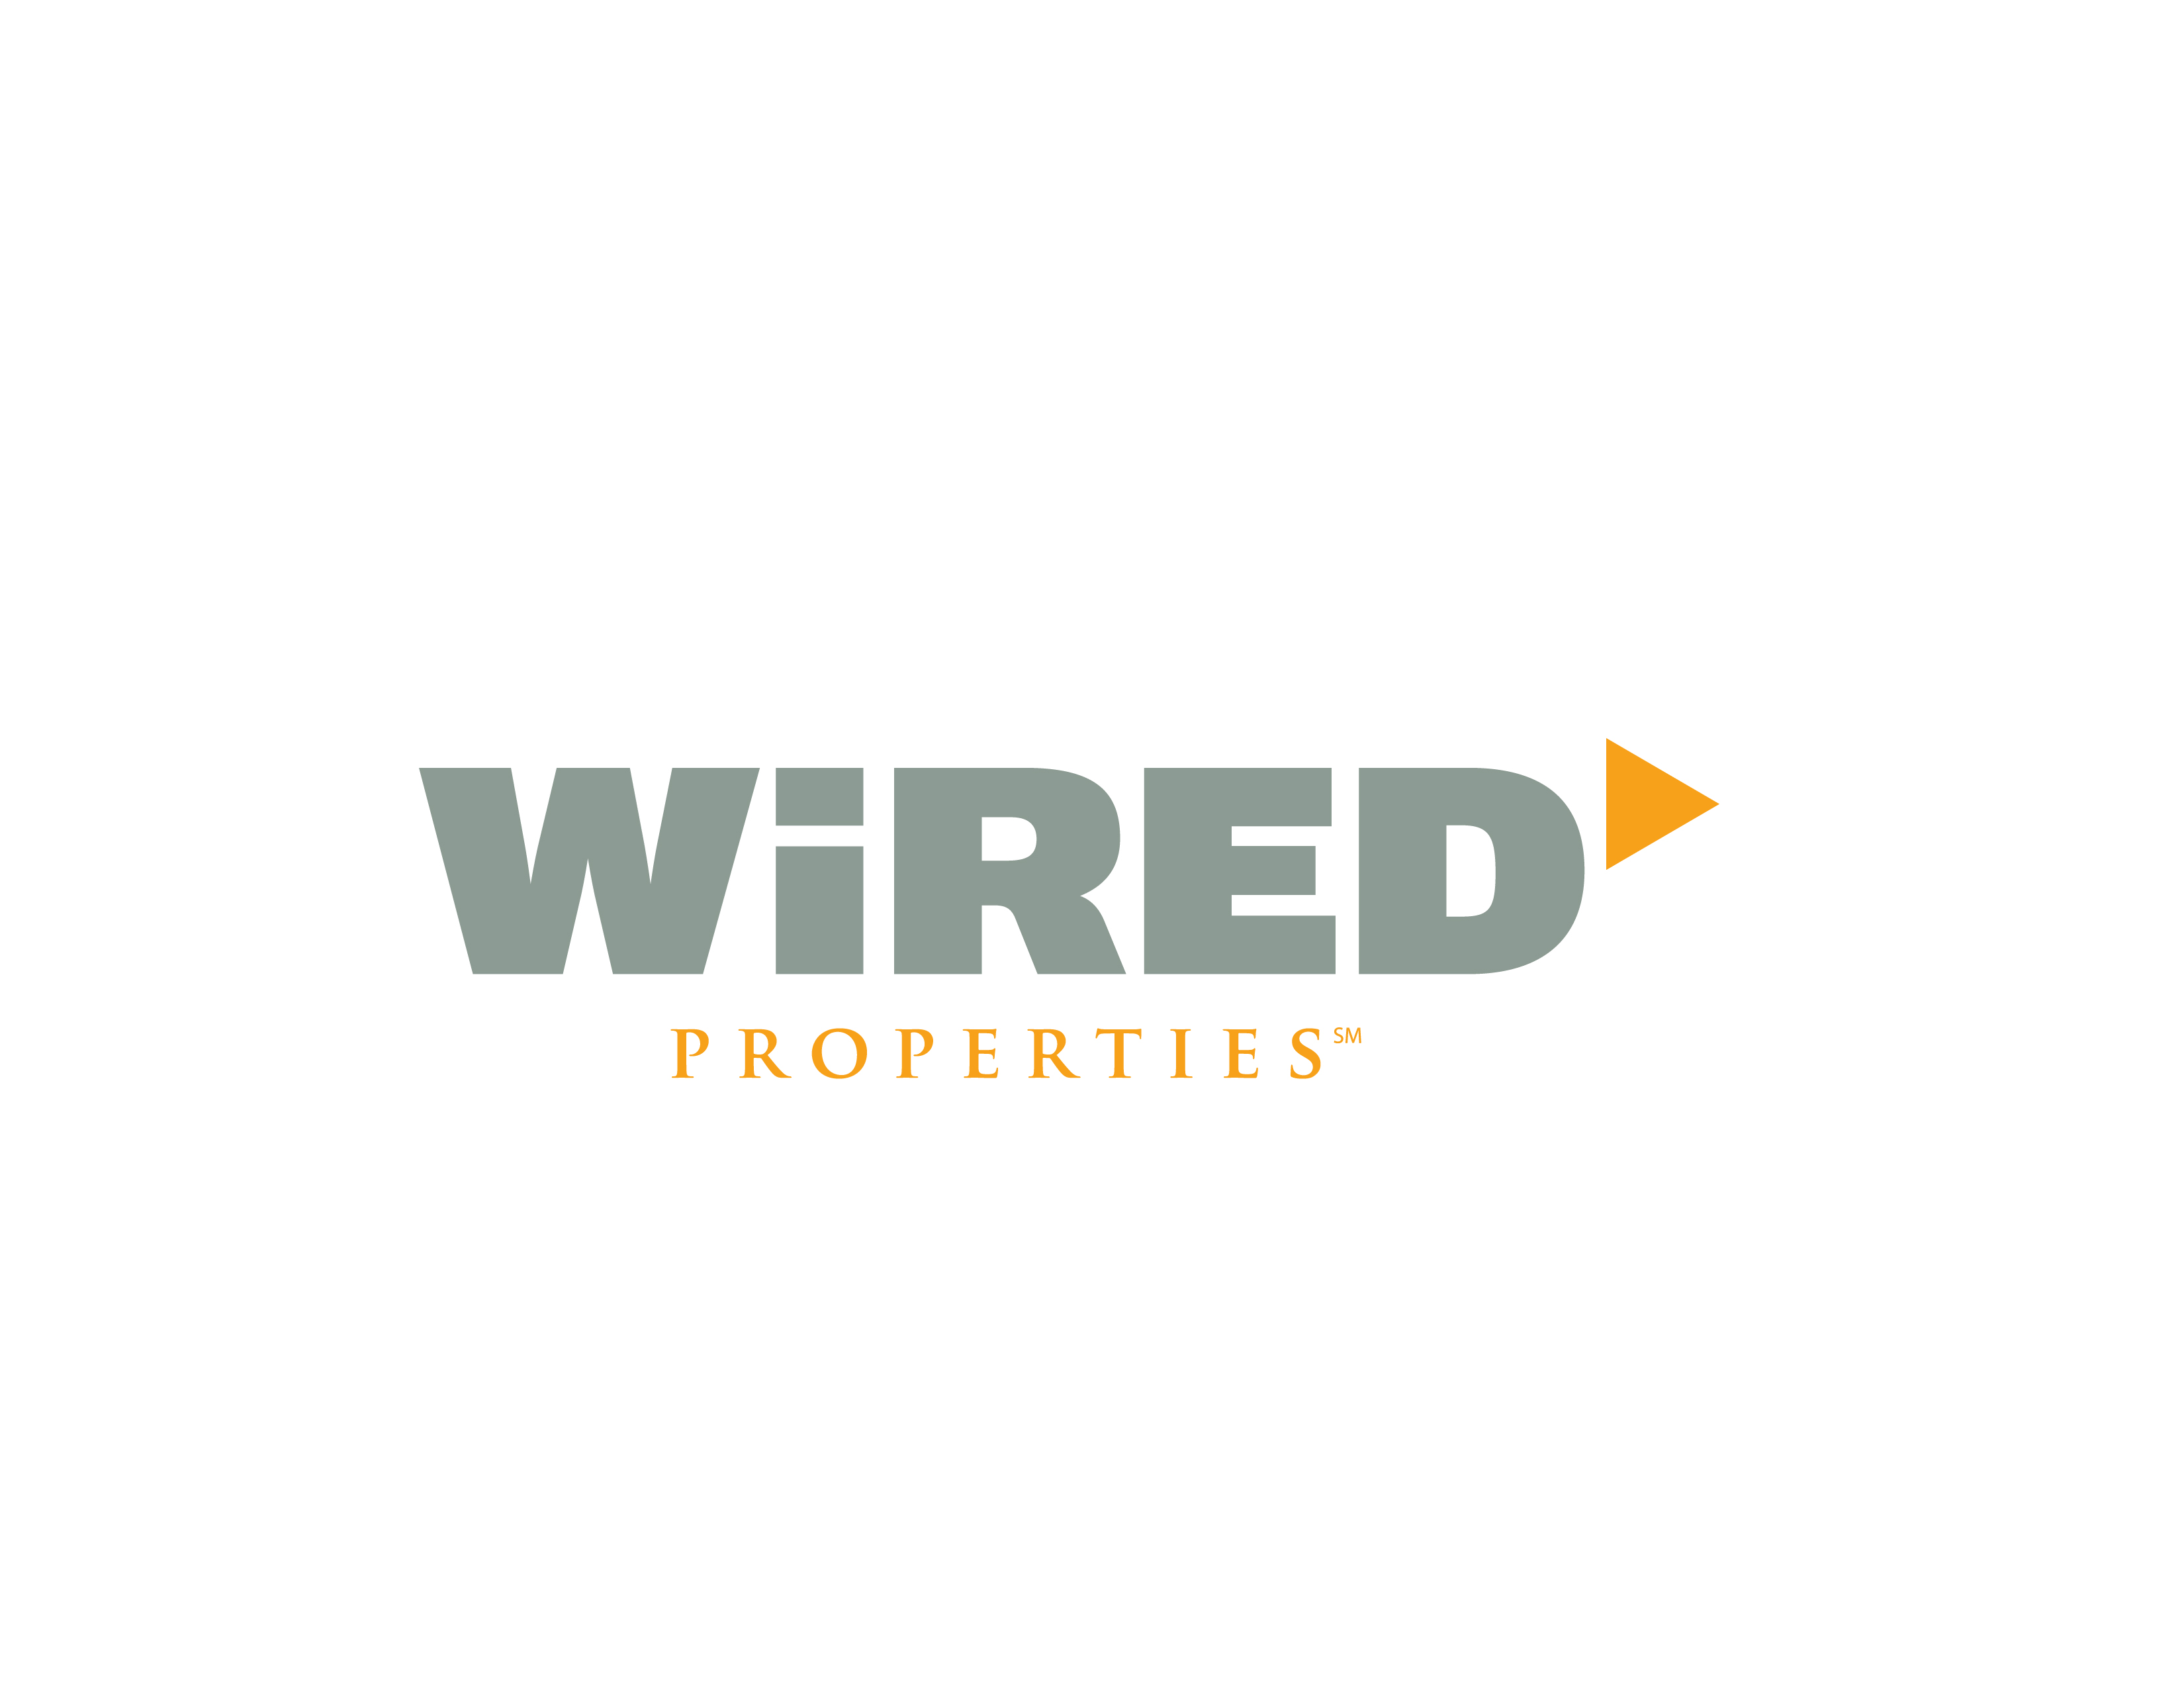 Fantastic Wired Logo Images - Wiring Schematics and Diagrams ...